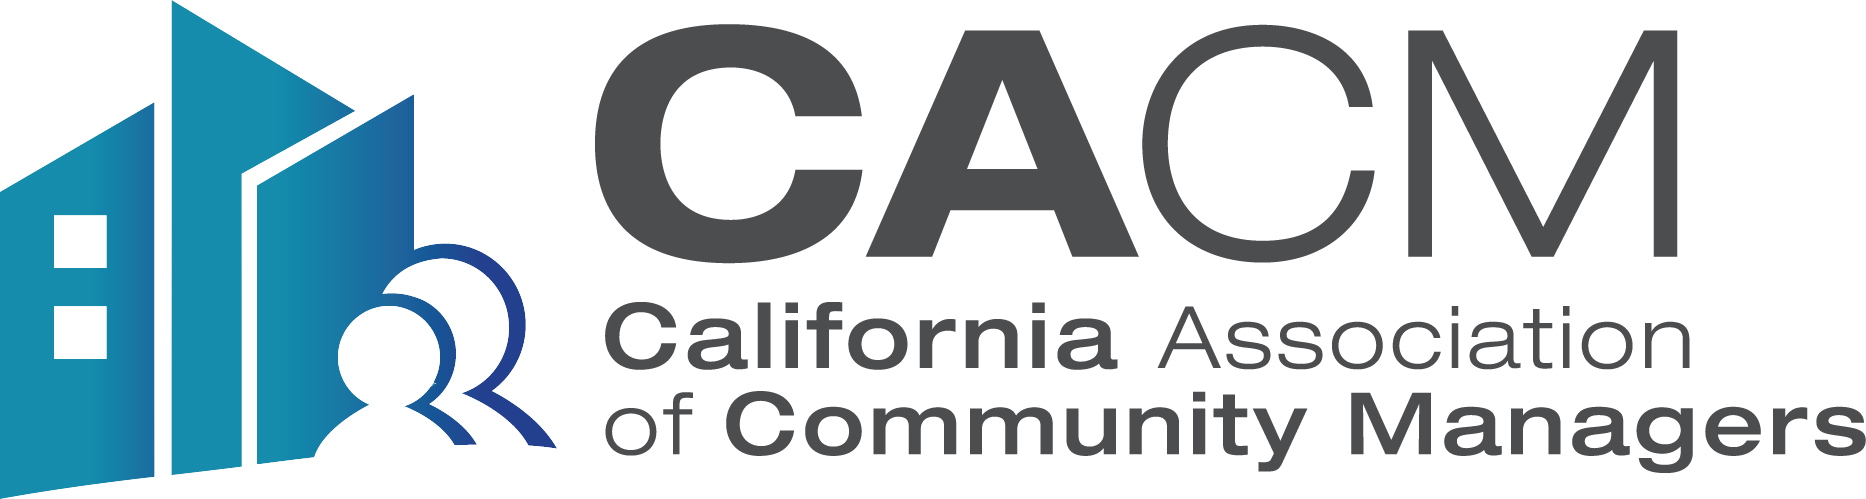 California Association of Community Managers (CACM)